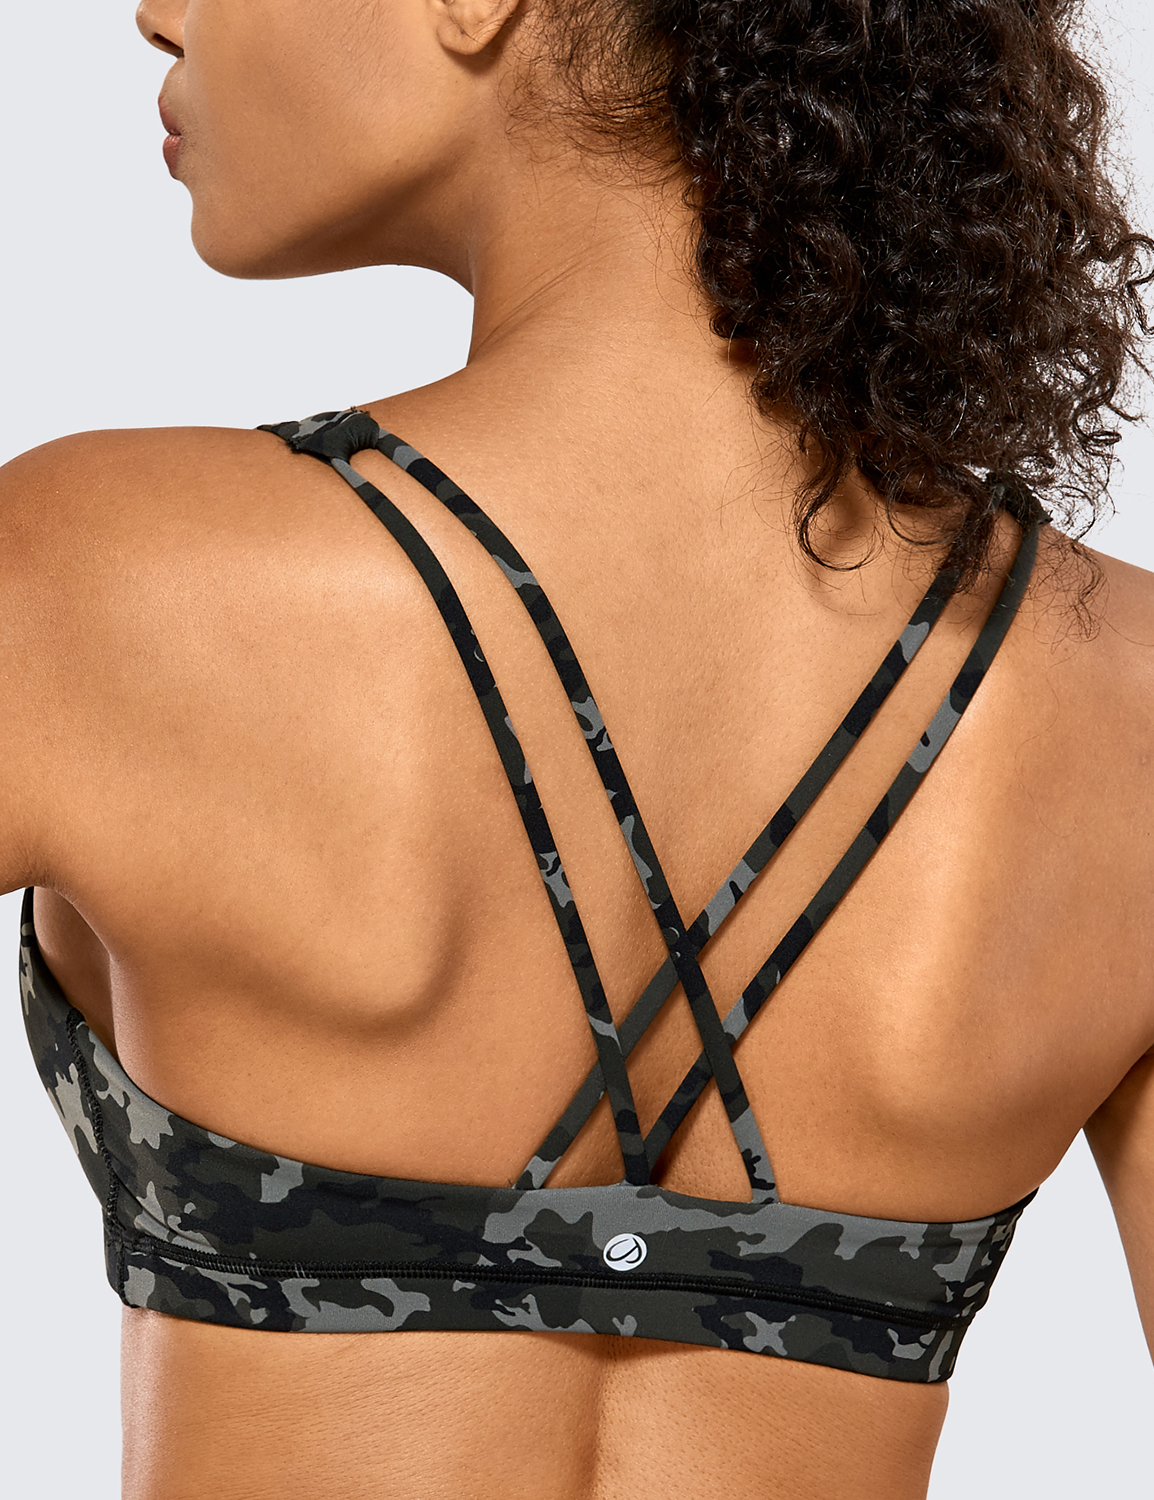 CRZ YOGA Womens Low Impact Wirefree Padded Yoga Sports Bra Strappy Back Activewear for Women